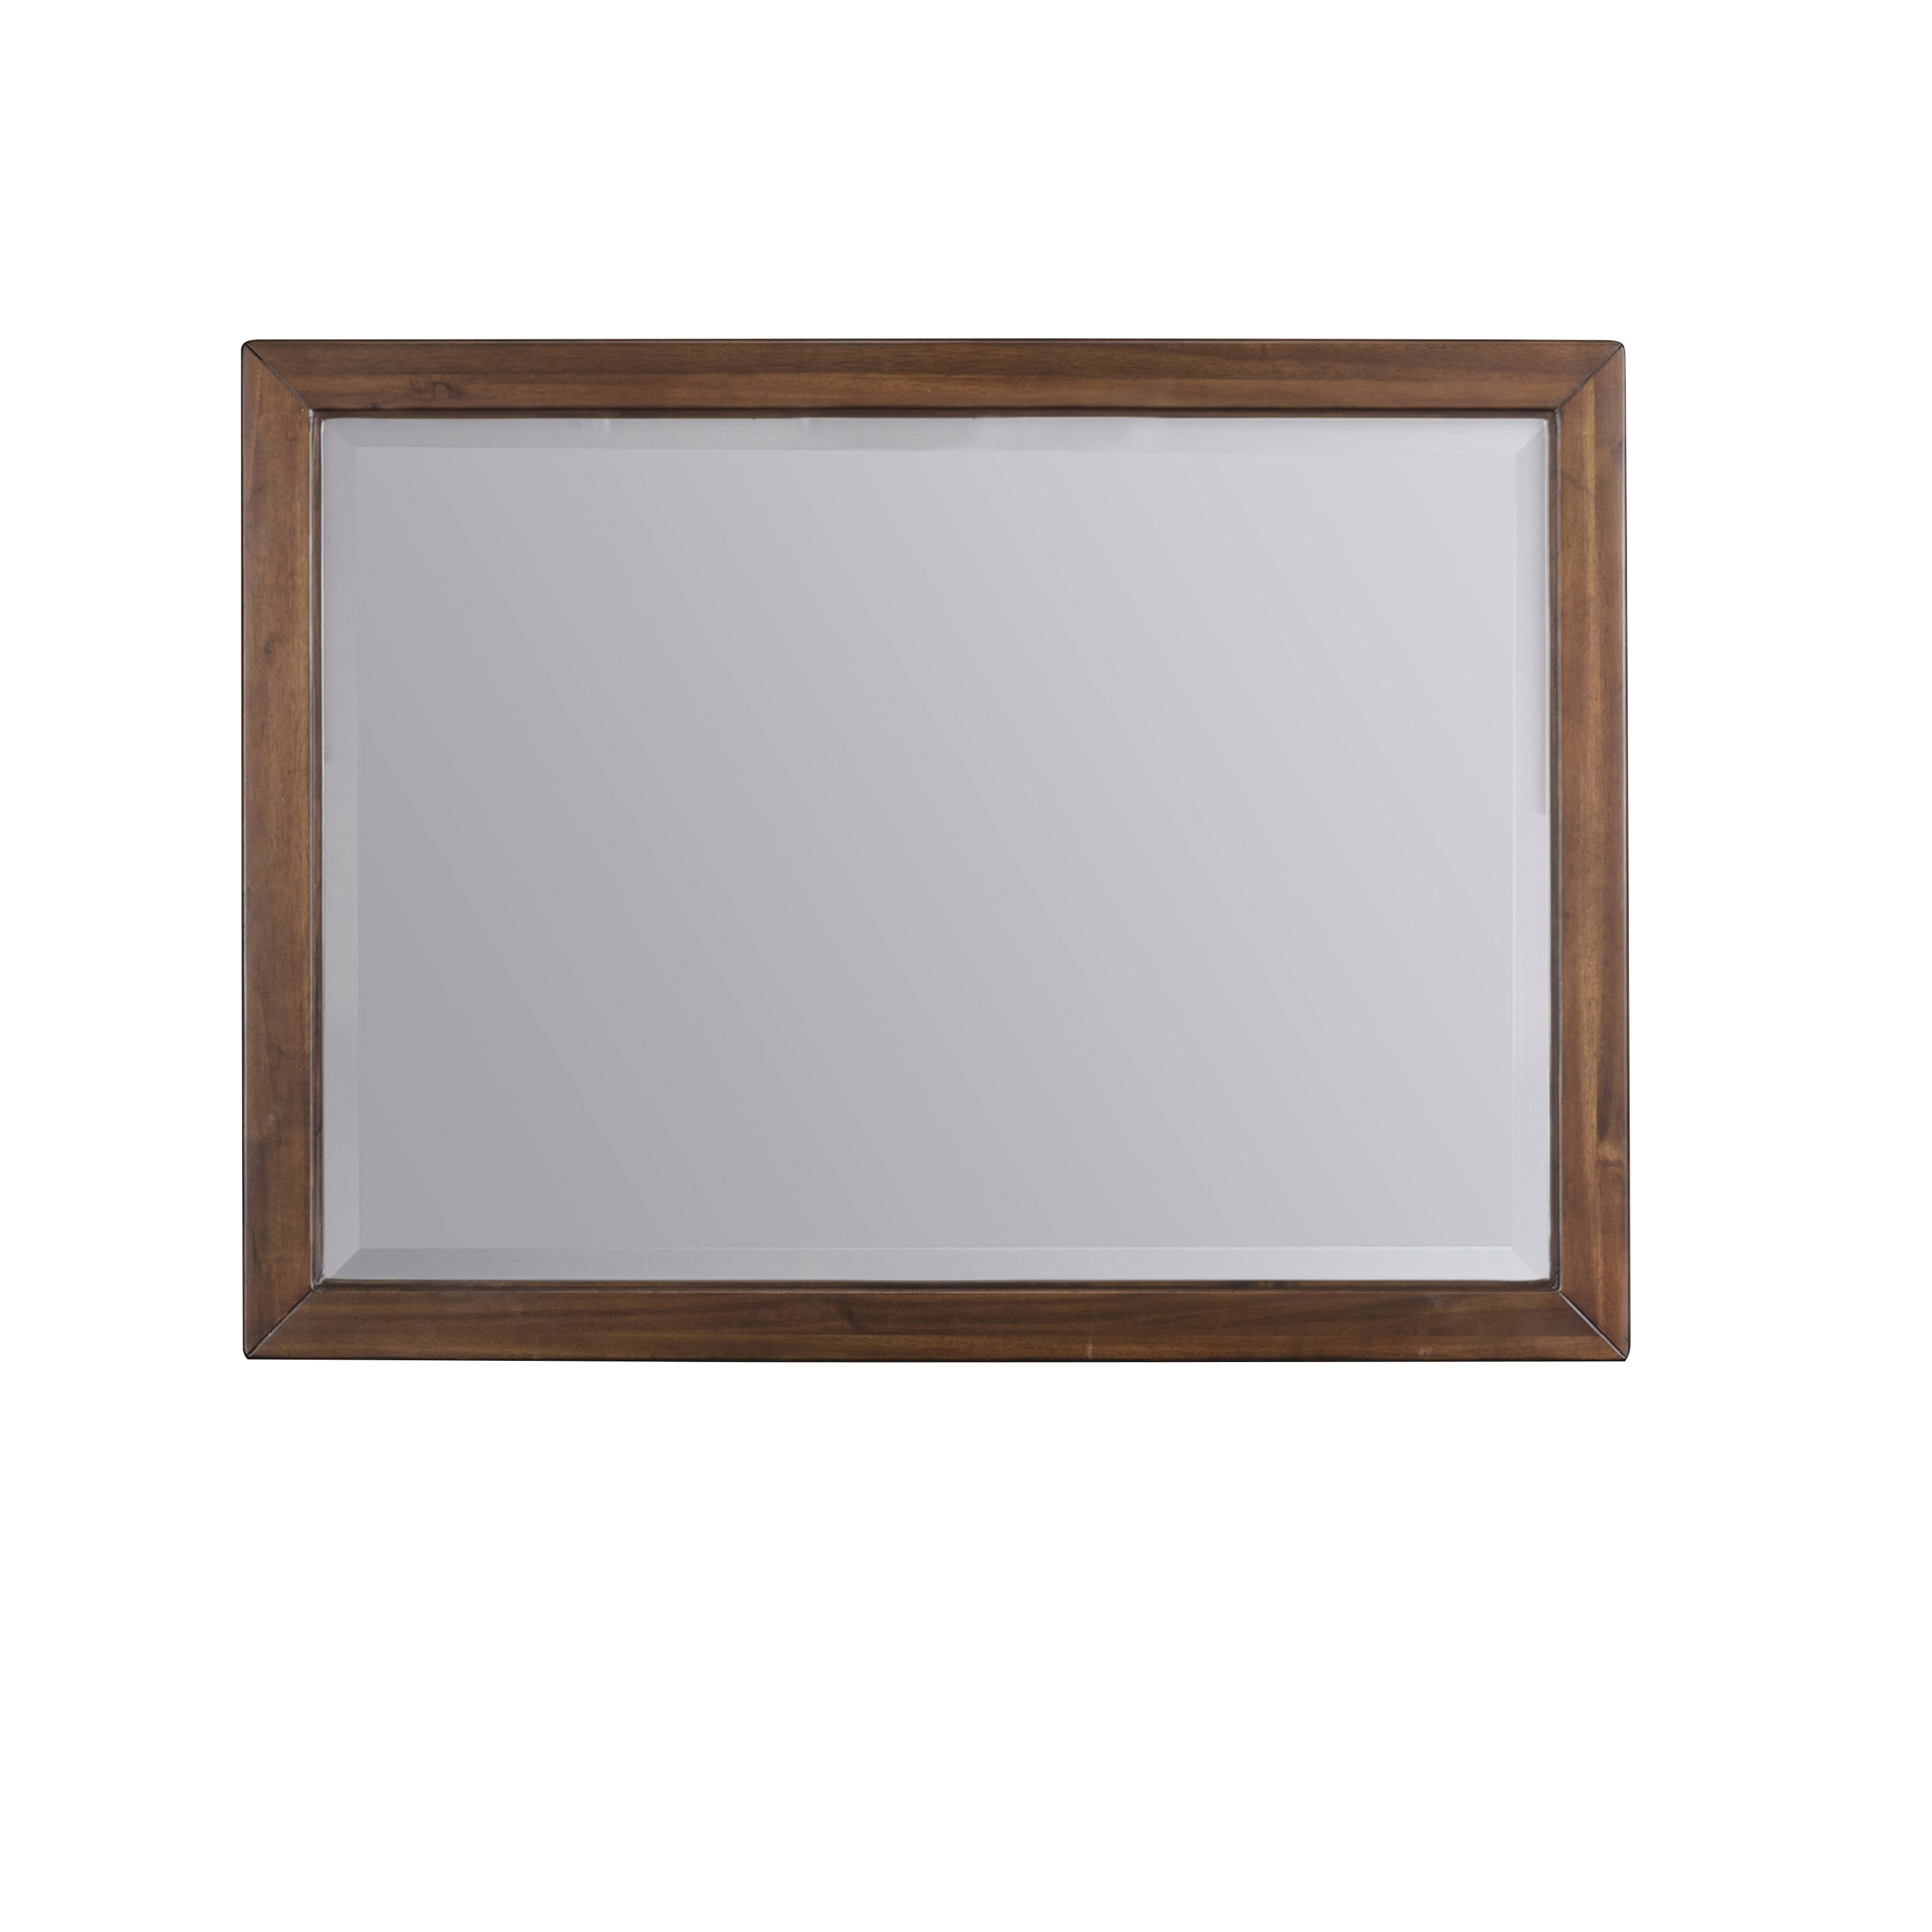 Bungalow Mirror by homestyles at Godby Home Furnishings